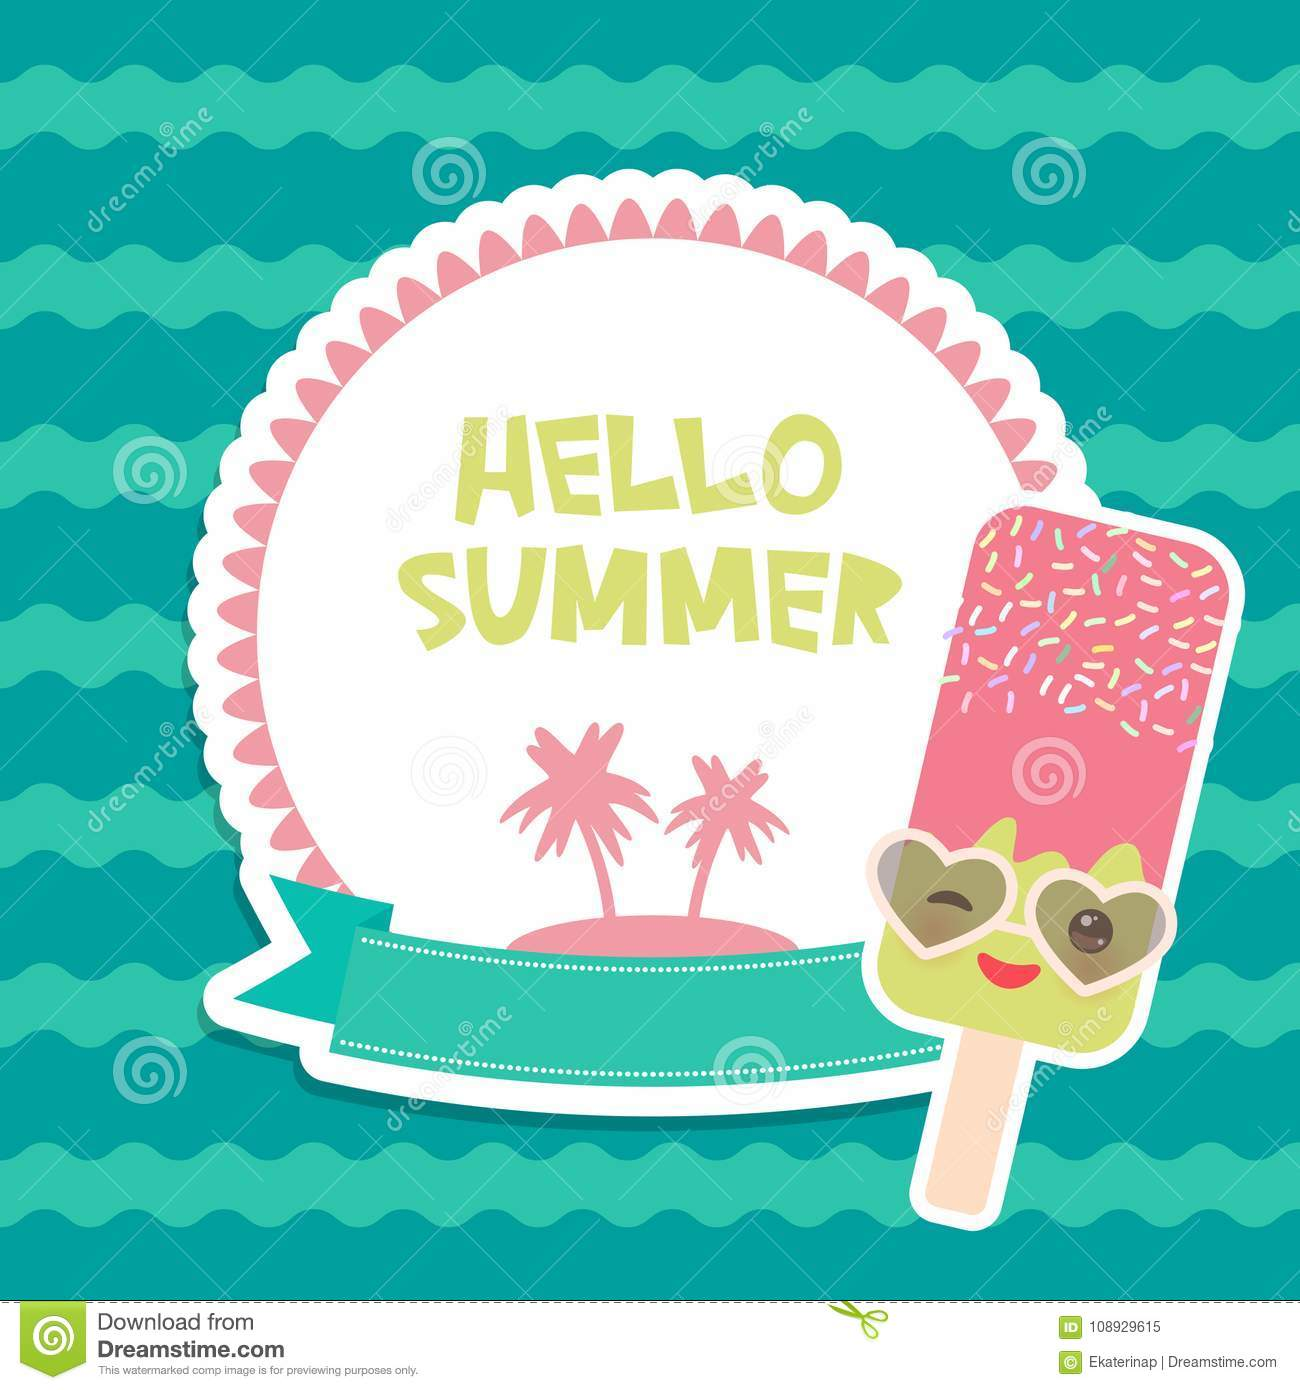 Hello Summer Chocolate Ice Cream, Ice Lolly, Kawaii With